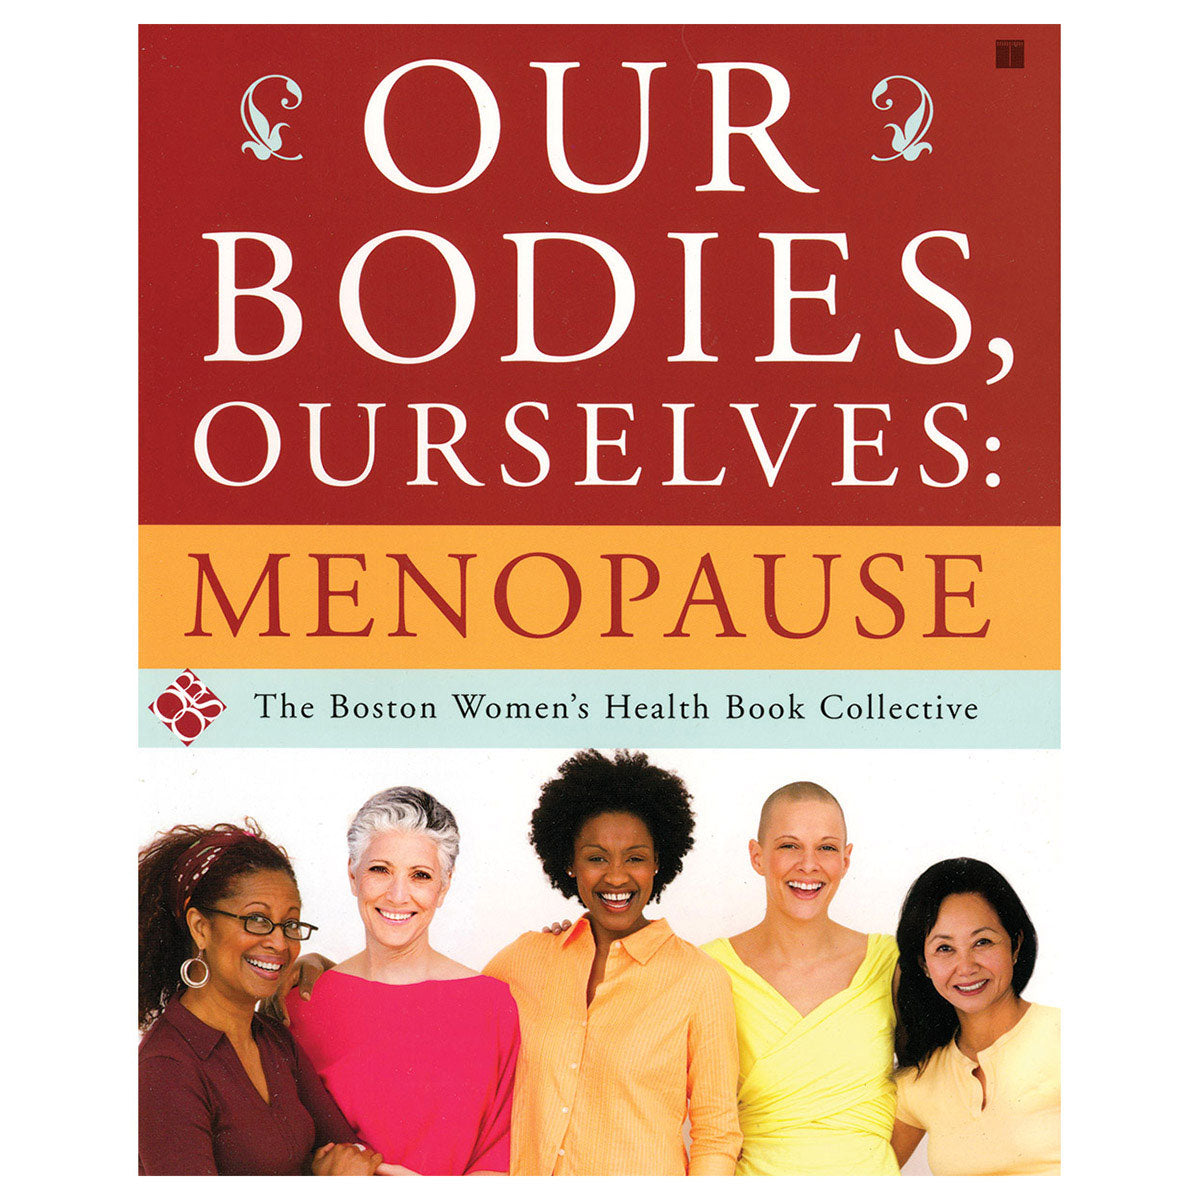 Our Bodies, Ourselves: Menopause - Simon & Schuster